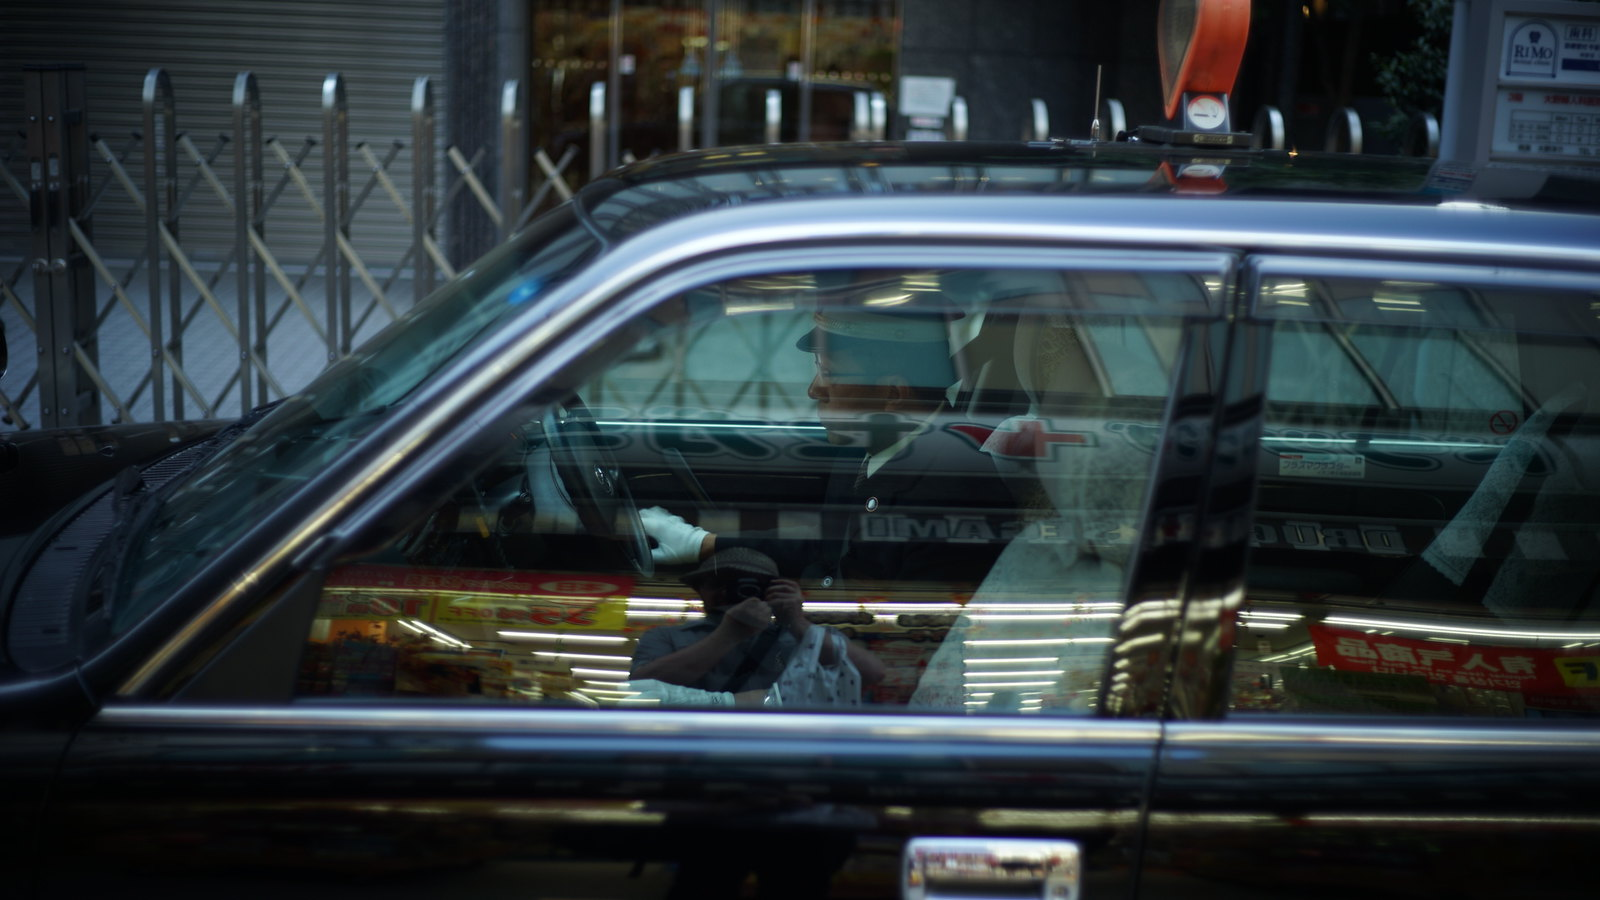 Reflections: Taxi